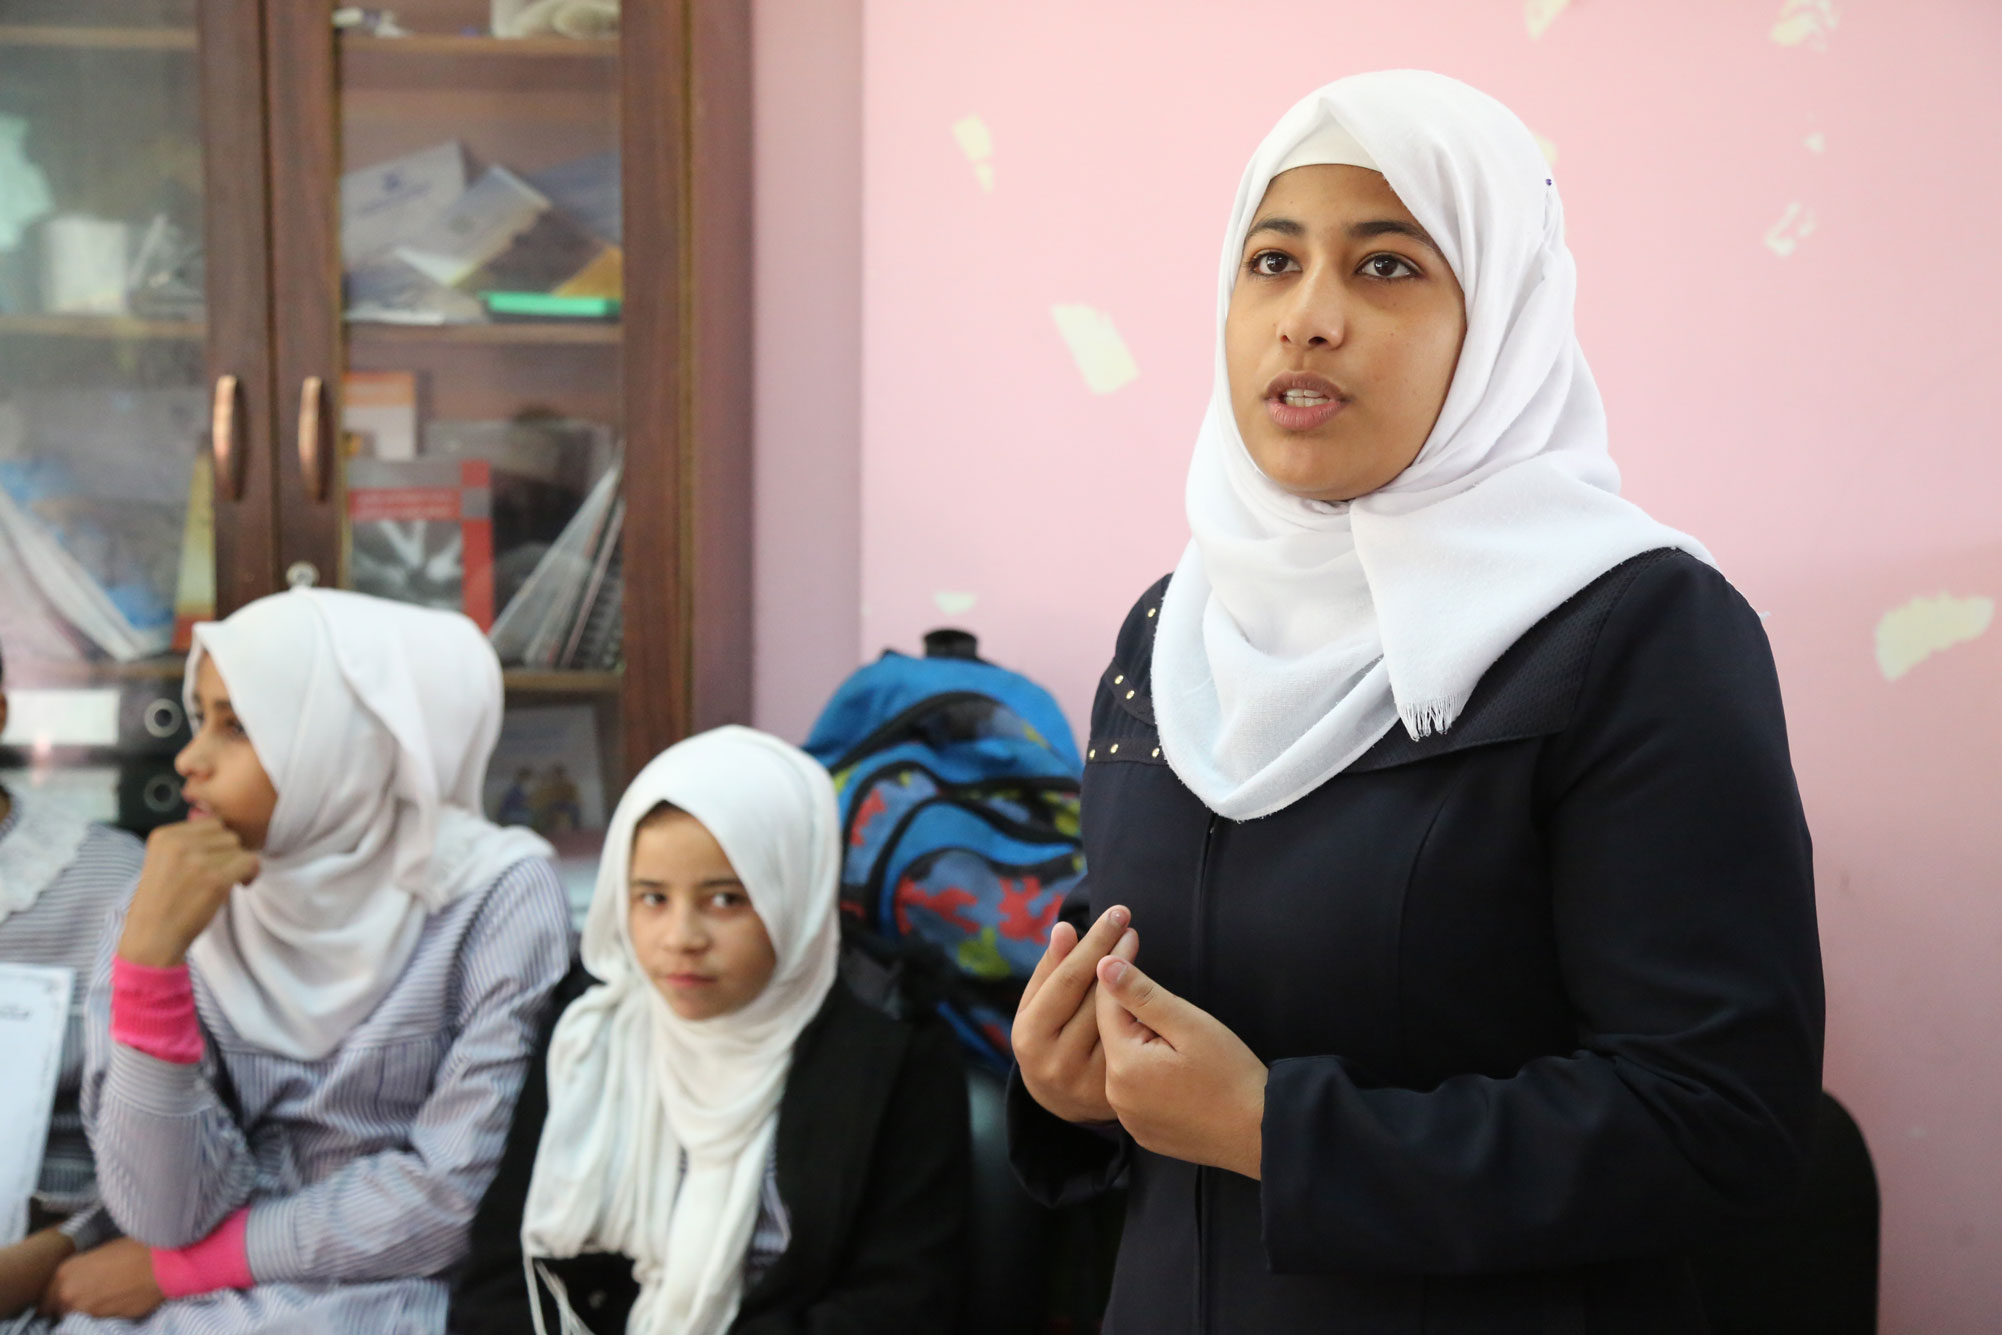 """Maha Abu Singir, a student from al-Maghazi Girls' Secondary School, engages in a discussion with a lawyer from the legal unit at al-Maghazi WPC during the activities held for the 16 days campaign. """"I came here today because I wanted to know more about this campaign, about my rights. I wanted to continue my education because I know that it is my power. I wanted to be a source of pride for my family and for my community as well,"""" Maha commented confidently. """"I know that being deprived of a good education will result in being deprived of many other things; therefore, education is very important to women in my community,"""" she added. © 2015 UNRWA Photo by Tamer Hamam"""